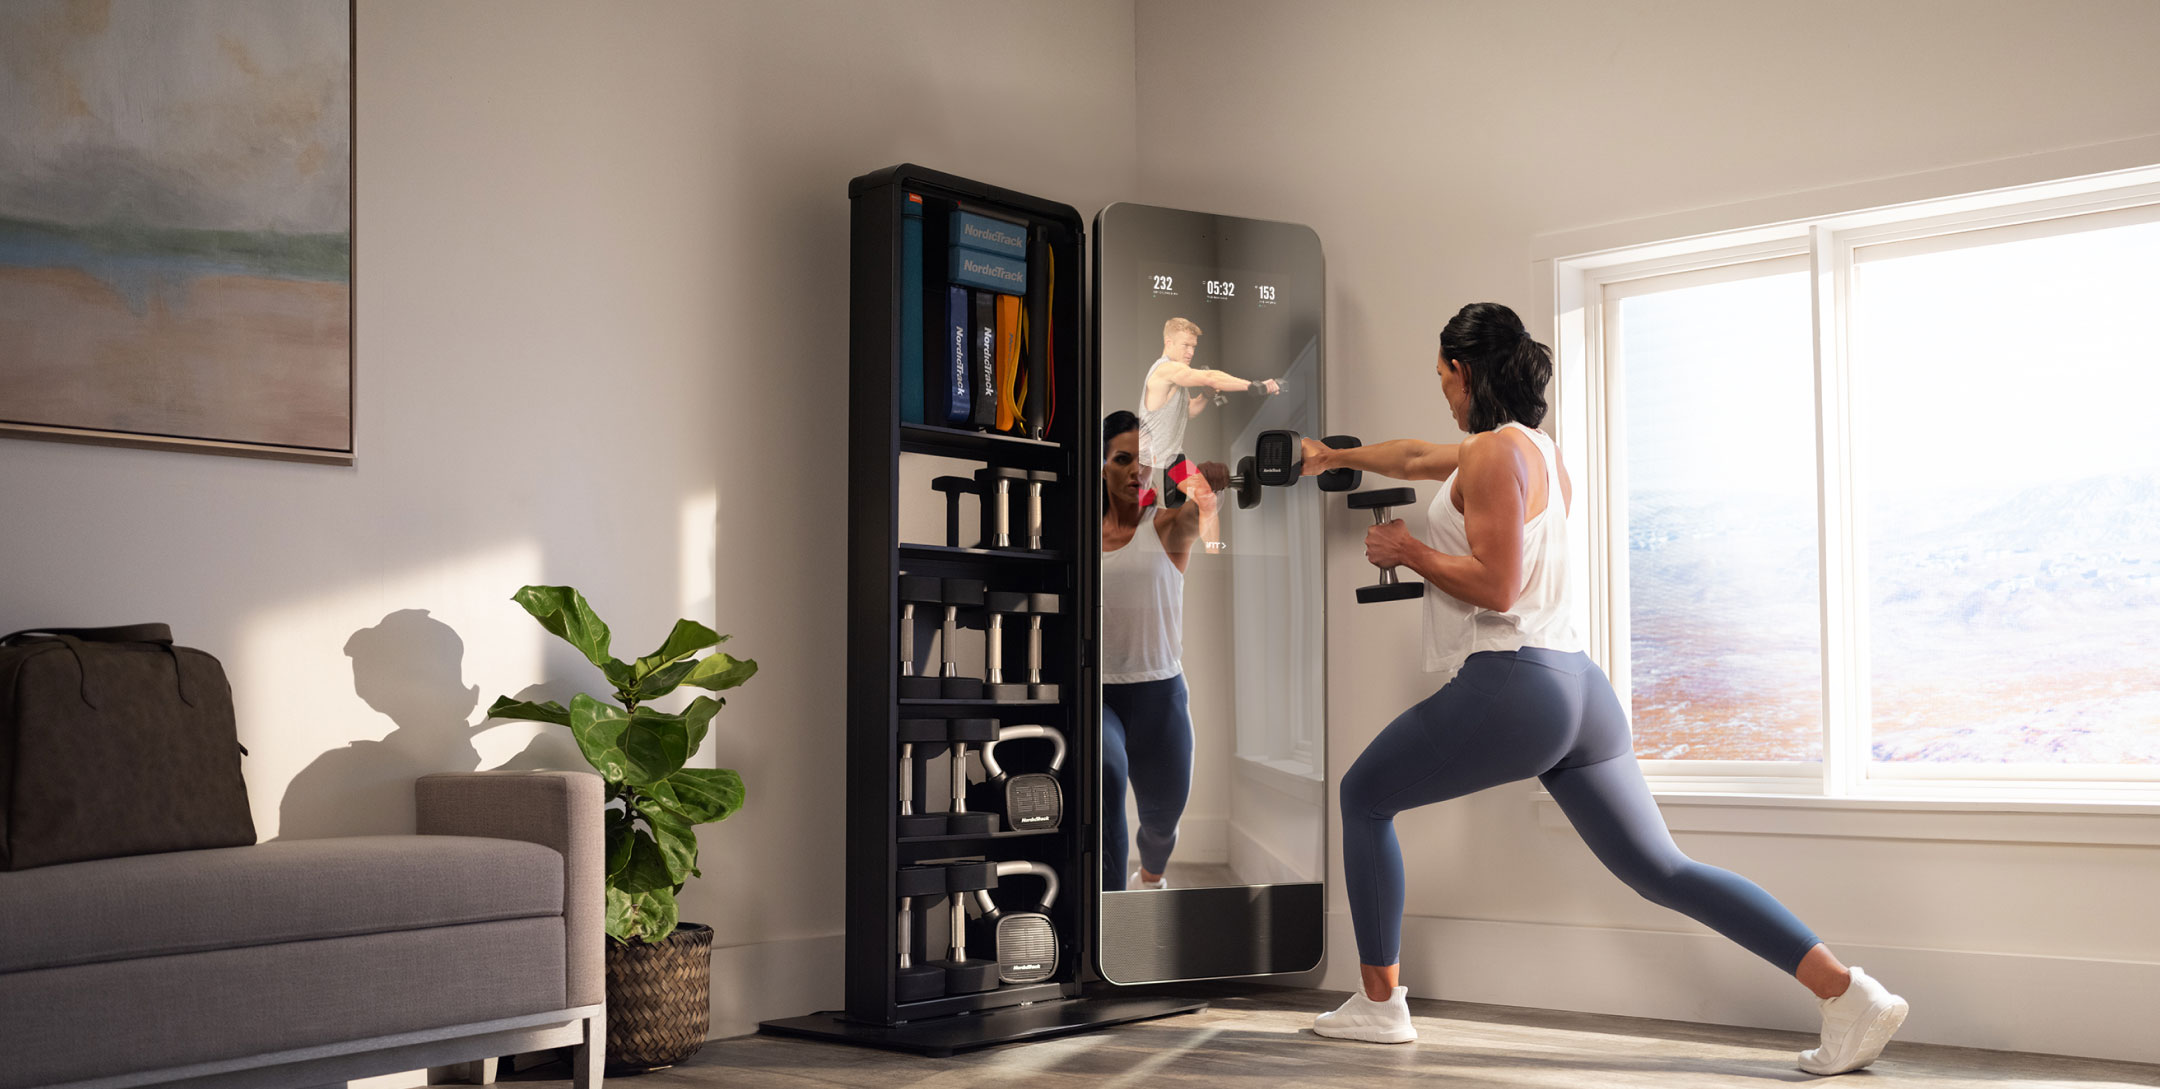 Woman exercises in front of a fitness mirror in living room